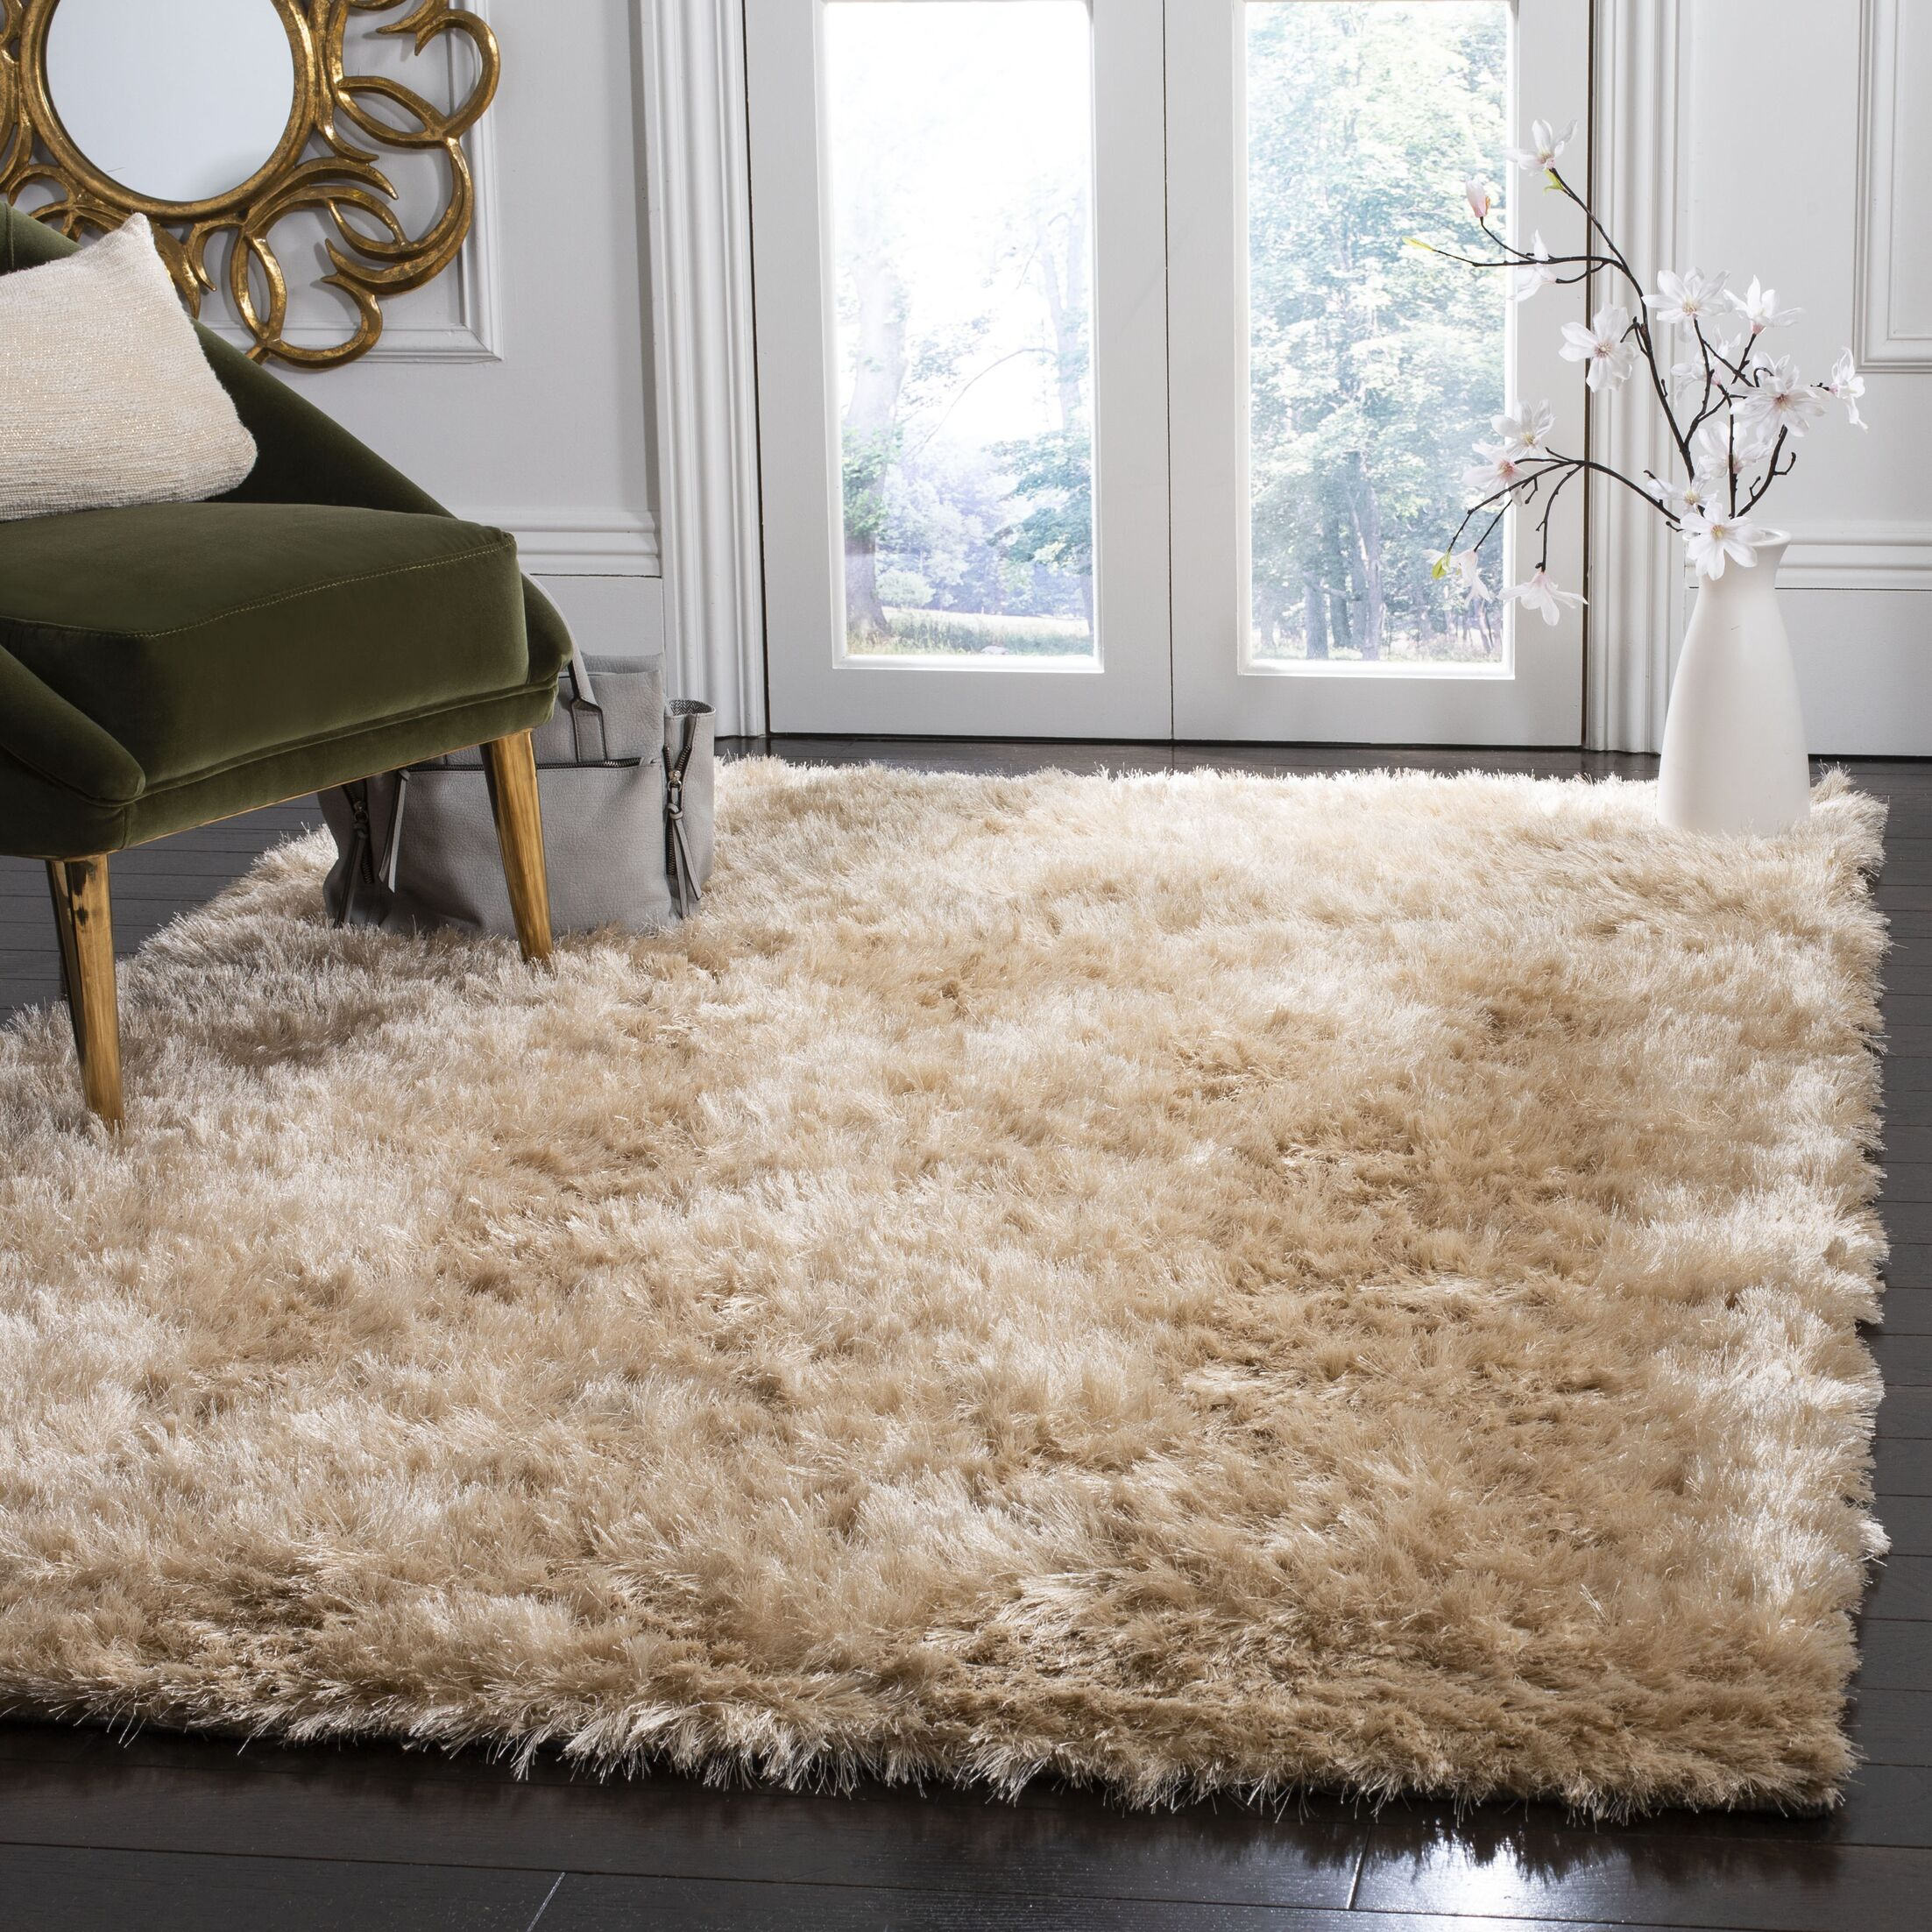 Moultrie Hand-Tufted Beige Area Rug Rug Size: Rectangle 5' X 8'